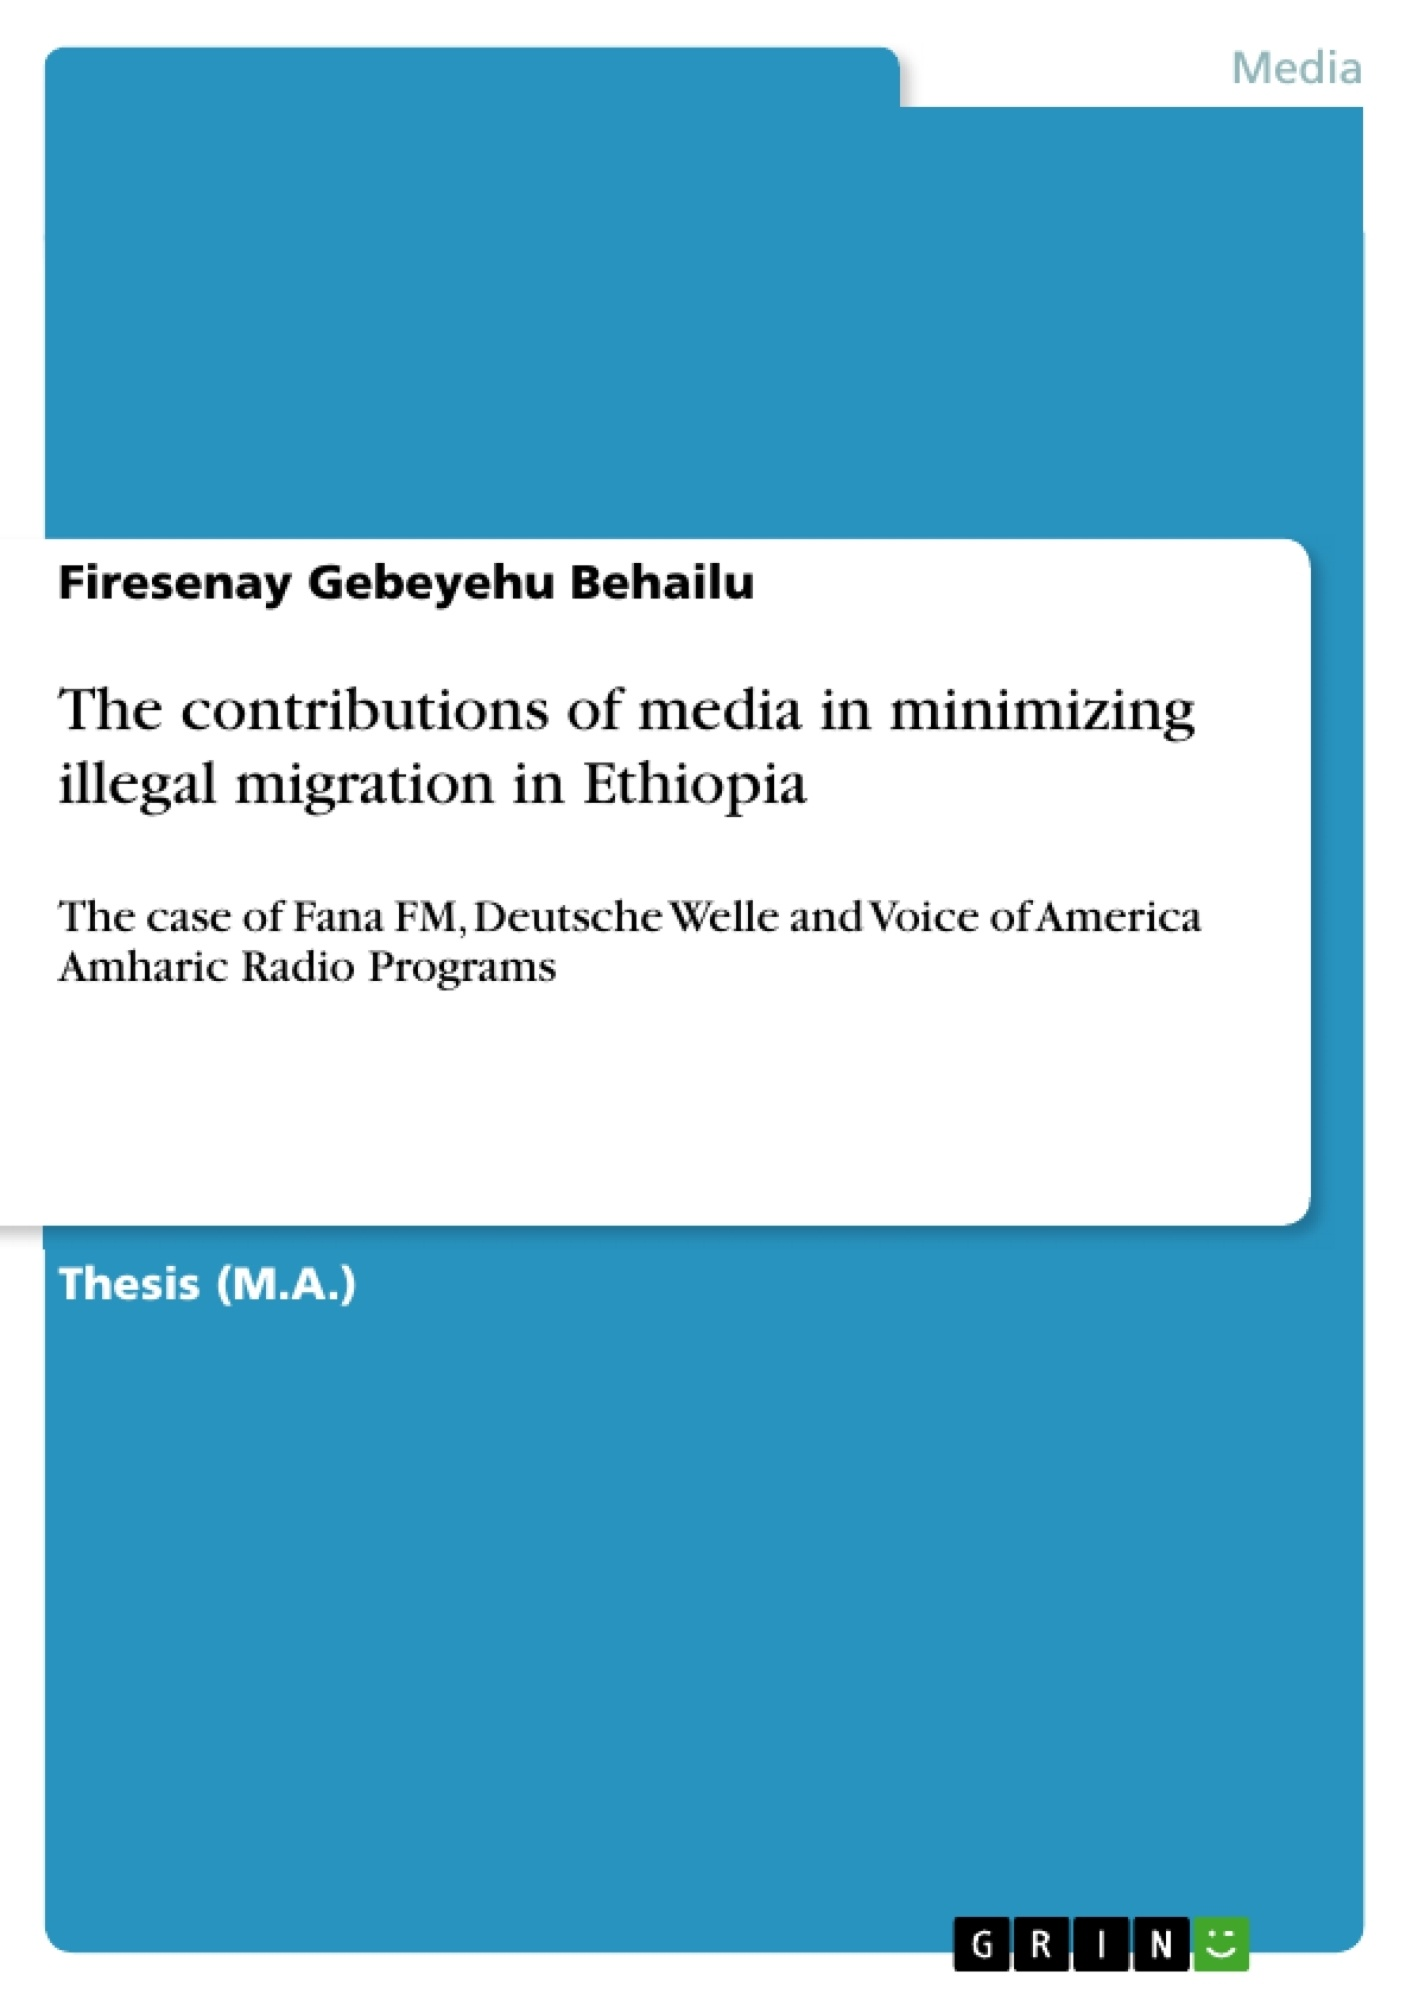 GRIN - The contributions of media in minimizing illegal migration in  Ethiopia